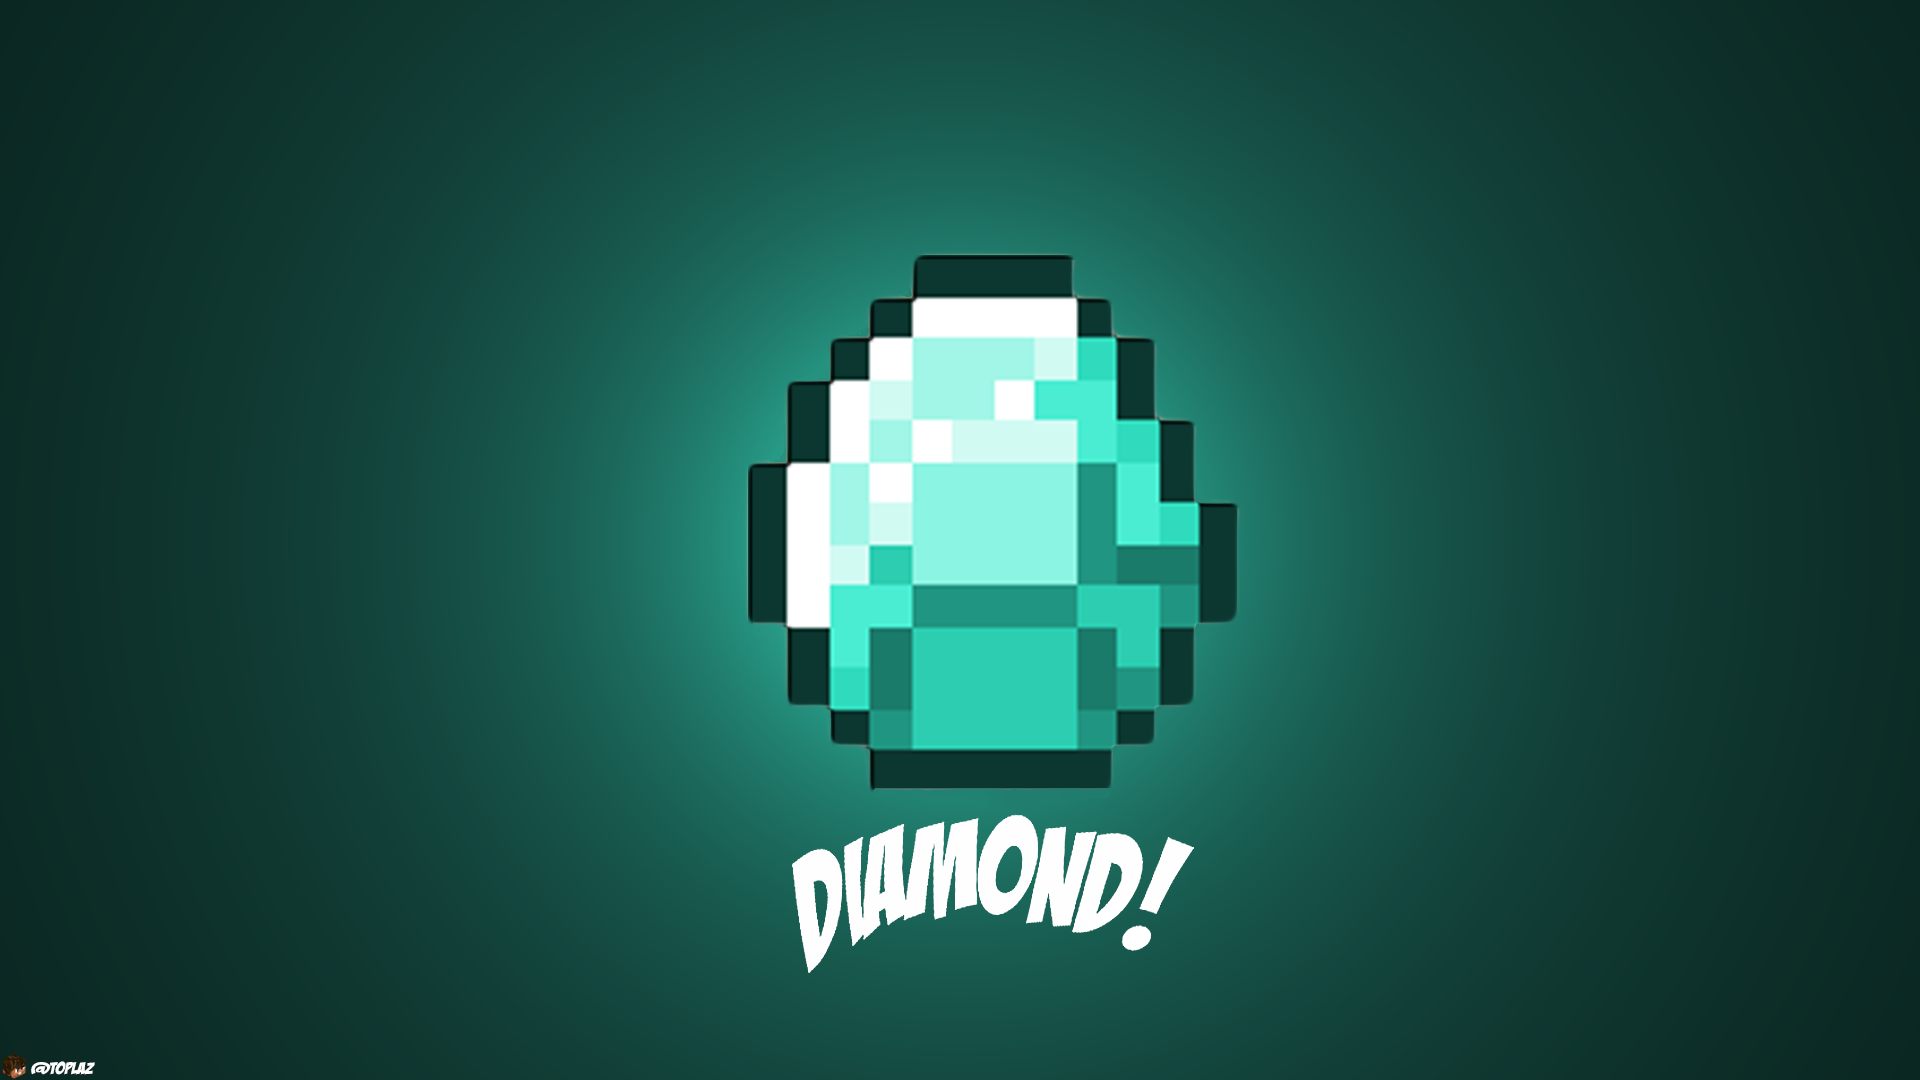 Diamond Full HD Wallpaper And Background Image